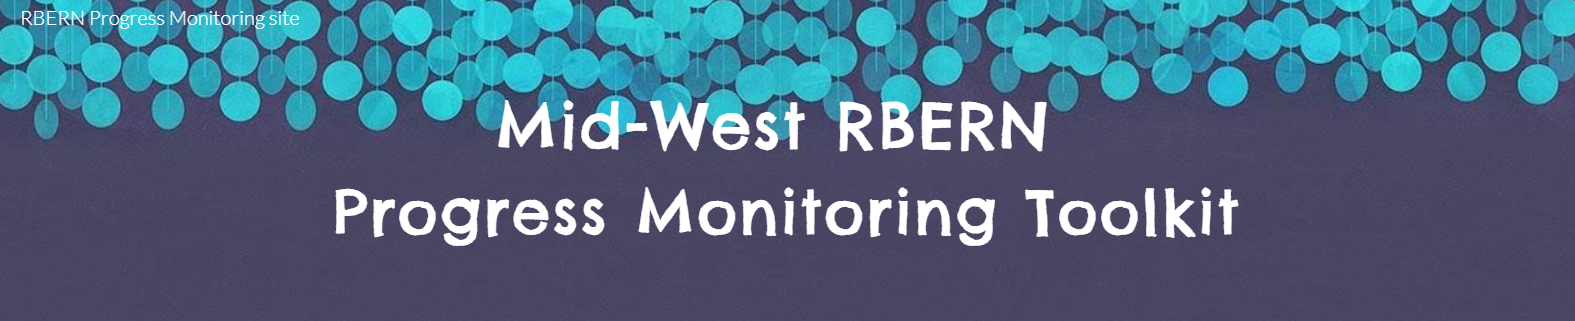 Mid-West RBERN Progress Monitoring toolkit graphic